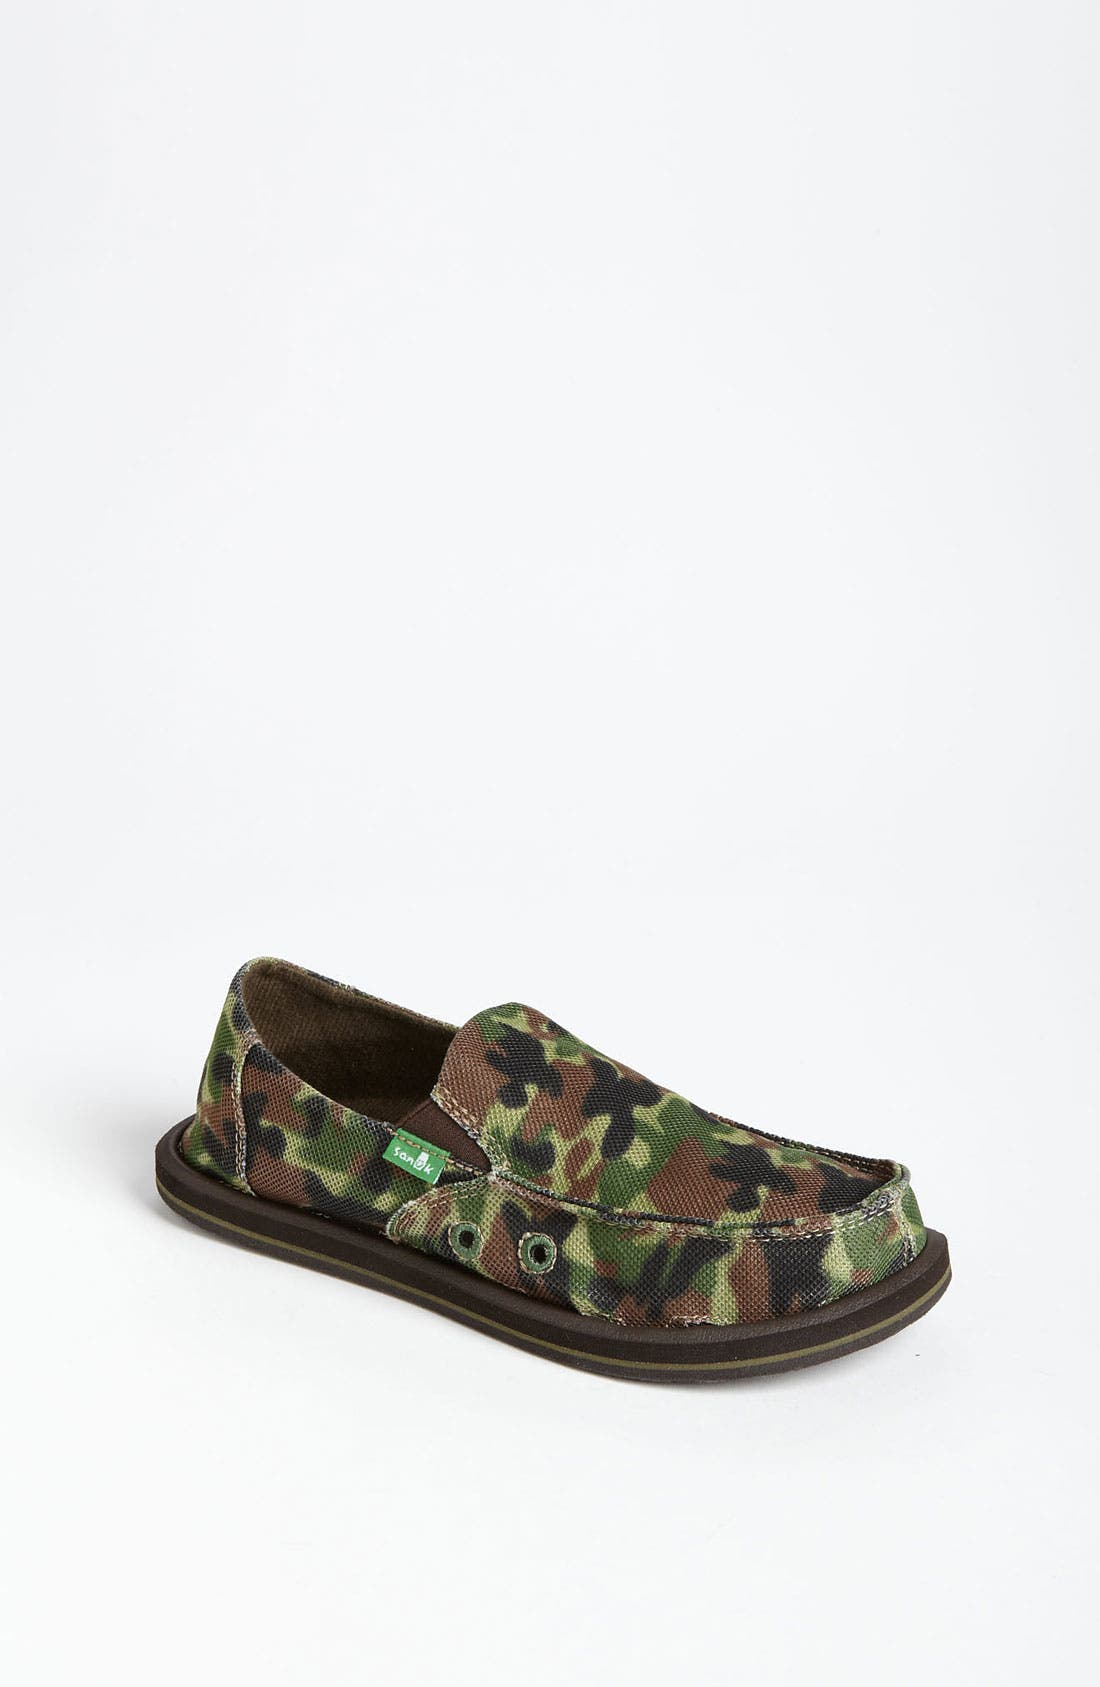 Alternate Image 1 Selected - Sanuk 'Army Brat' Slip-On (Toddler, Little Kid & Big Kid)